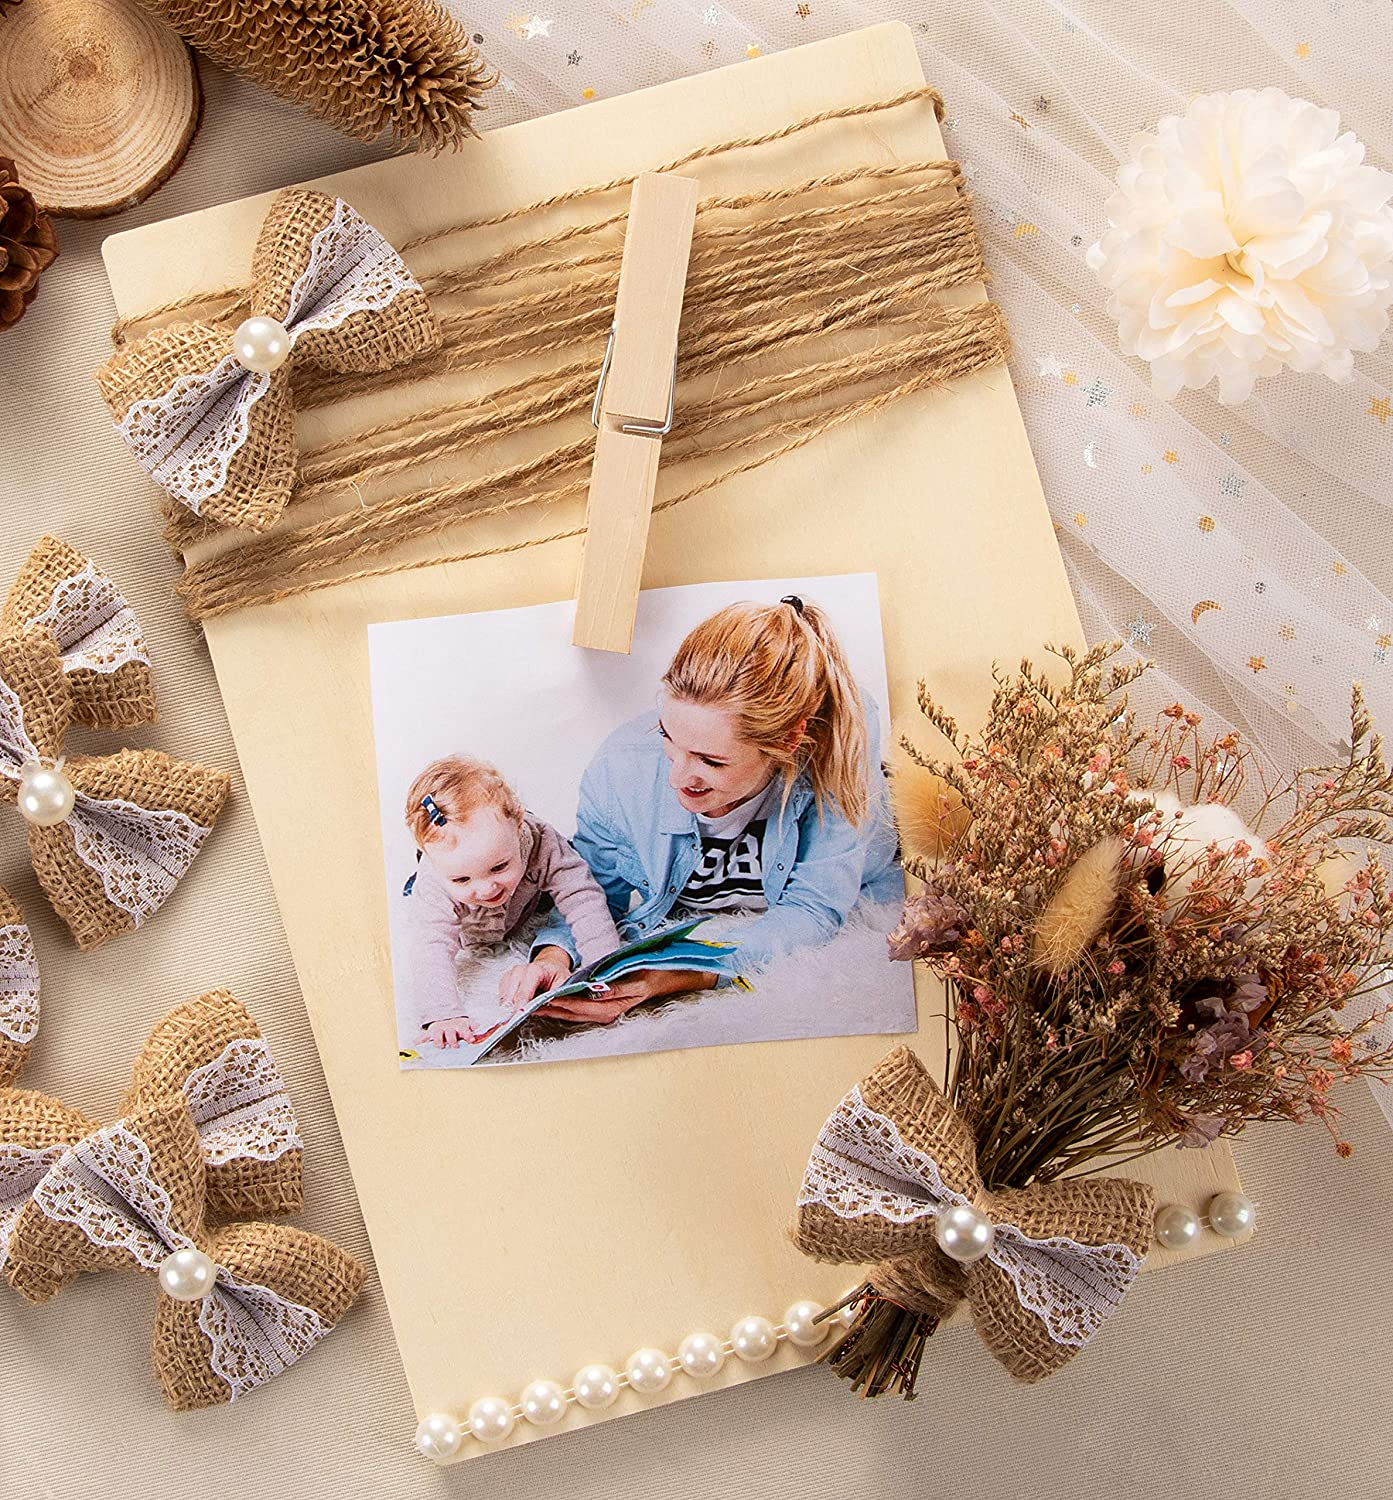 Wedding Decoration 6-Pack Rectangle Wooden Plaque Signs for Home DIY Craft 10.6 x 7 x 0.25 inches Unfinished Wood Plaques